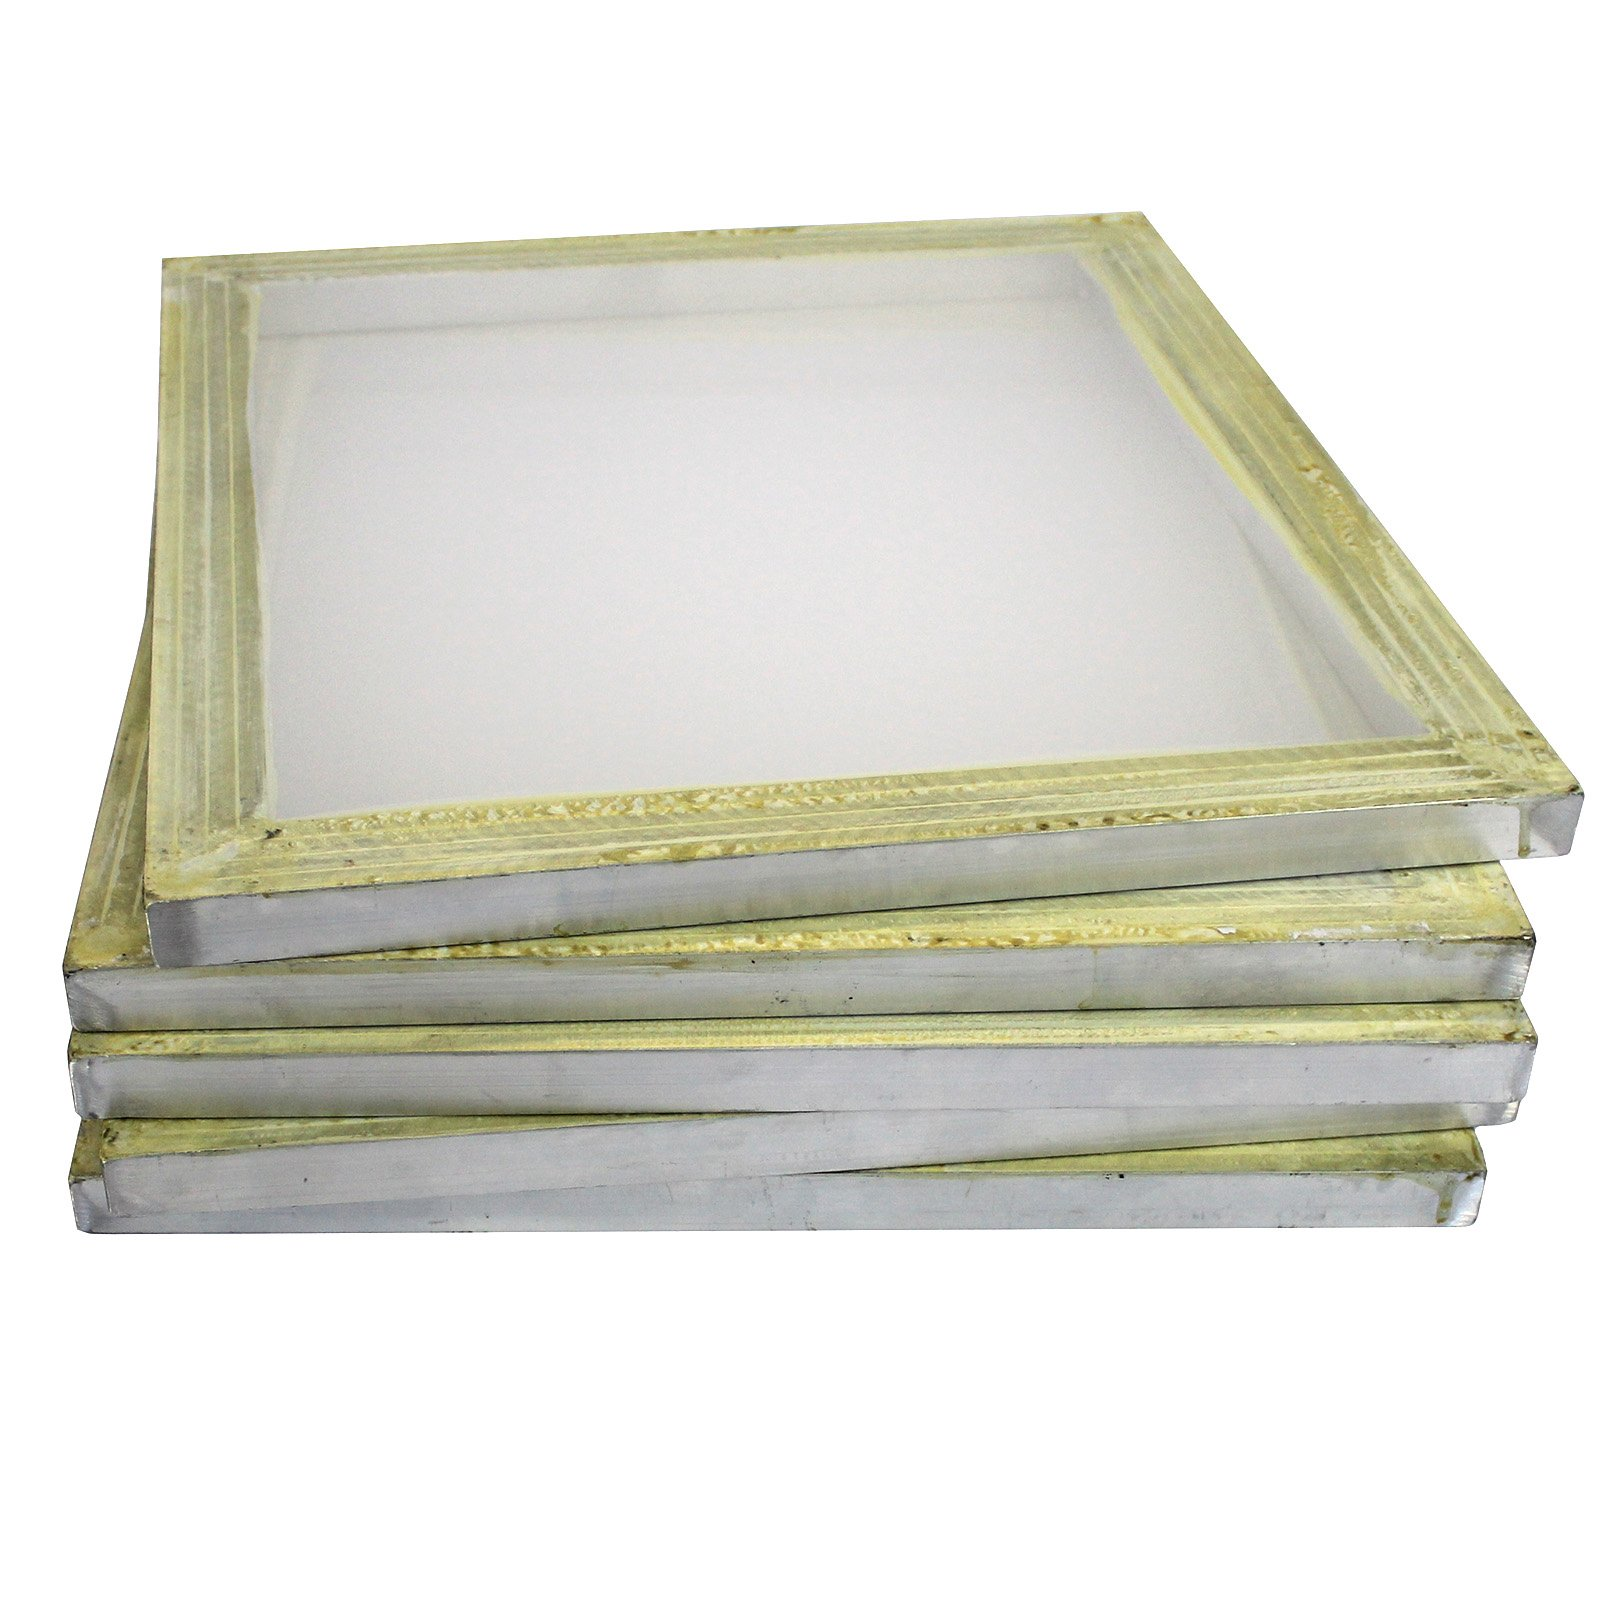 INTSUPERMAI 6pc 18inch x20inch Aluminum Silk Screen Frame with 200 Mesh Yellow Pre-Stretched Silk Screen Printing Frame